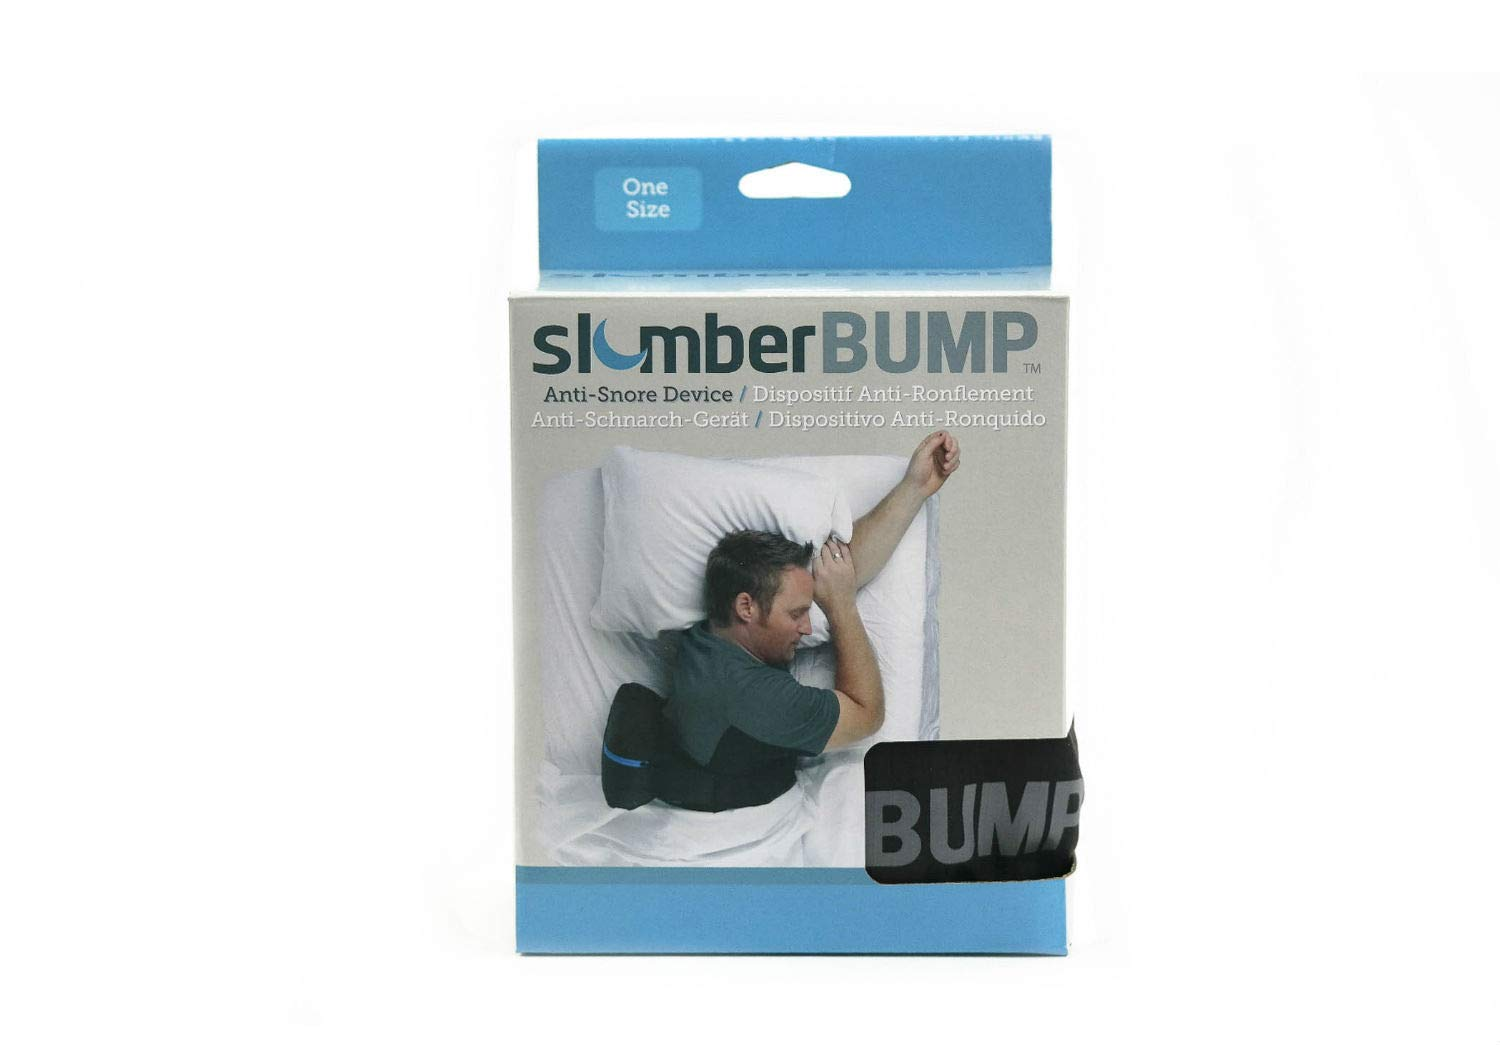 slumberBUMP Positional Sleep Belt for Snoring and Sleep-Disordered Breathing, Black/Gray (One Size Fits Most) by SlumberBump